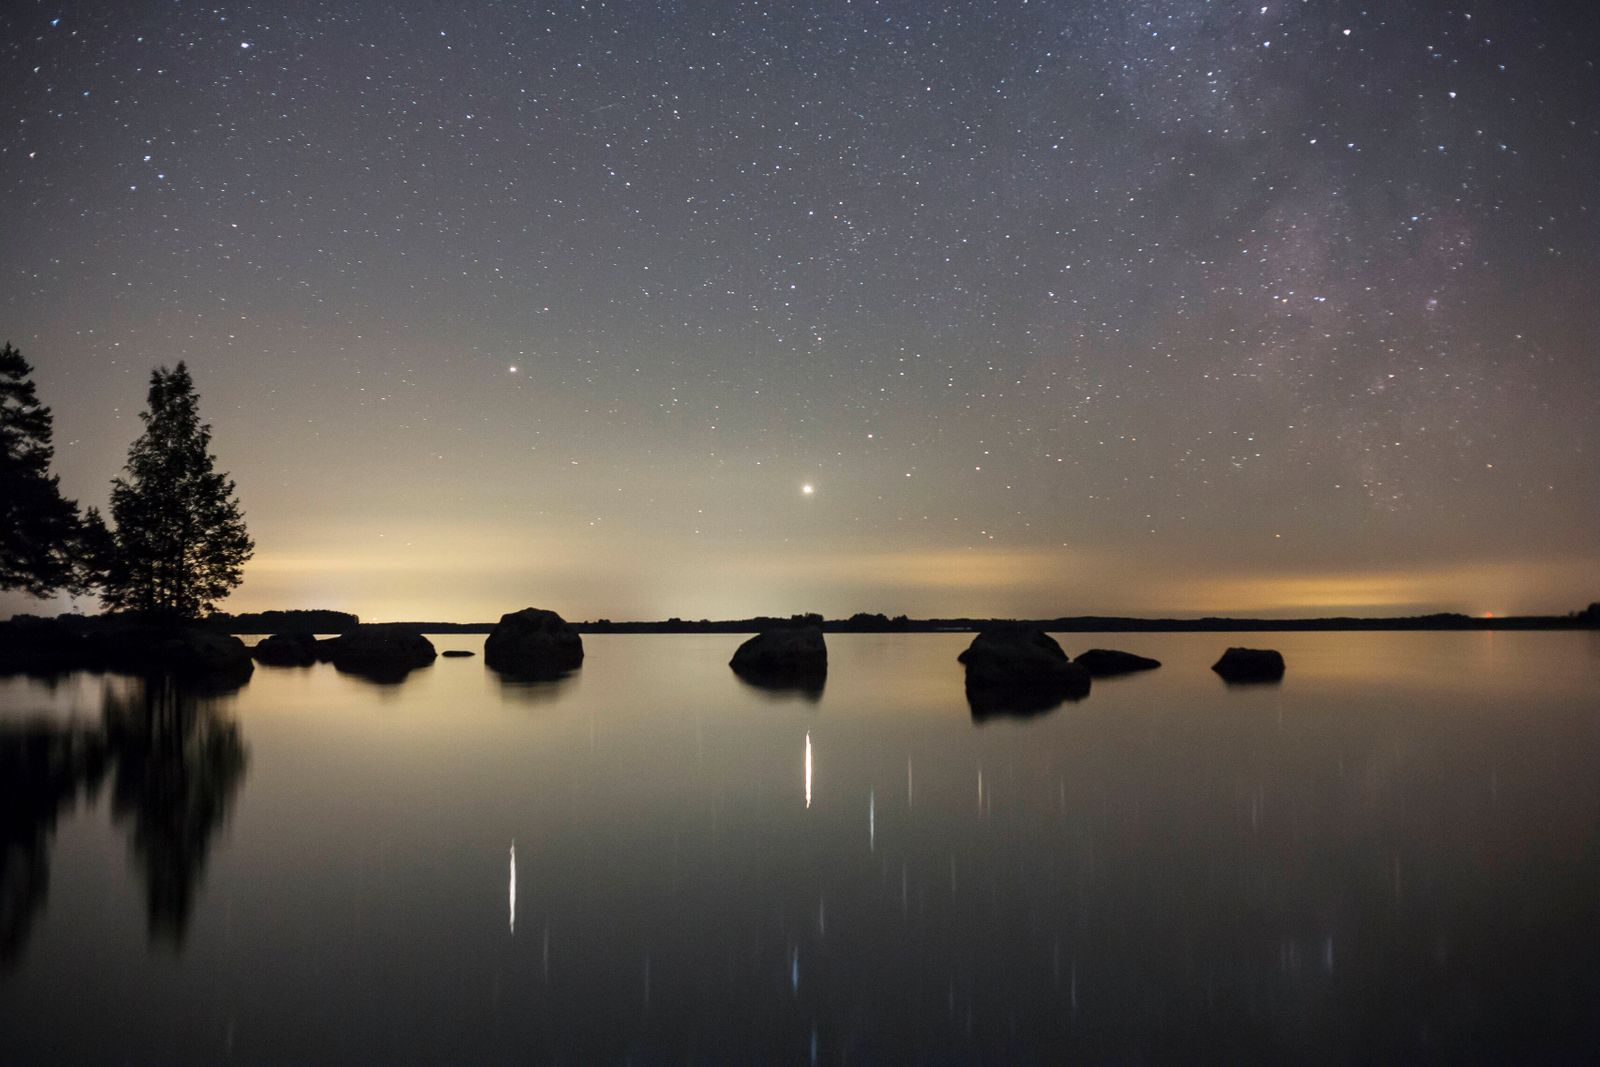 The planets Saturn and Jupiter and a part of the Milky Way Sverige SCI x11050x *** The planets Saturn and Jupiter and a